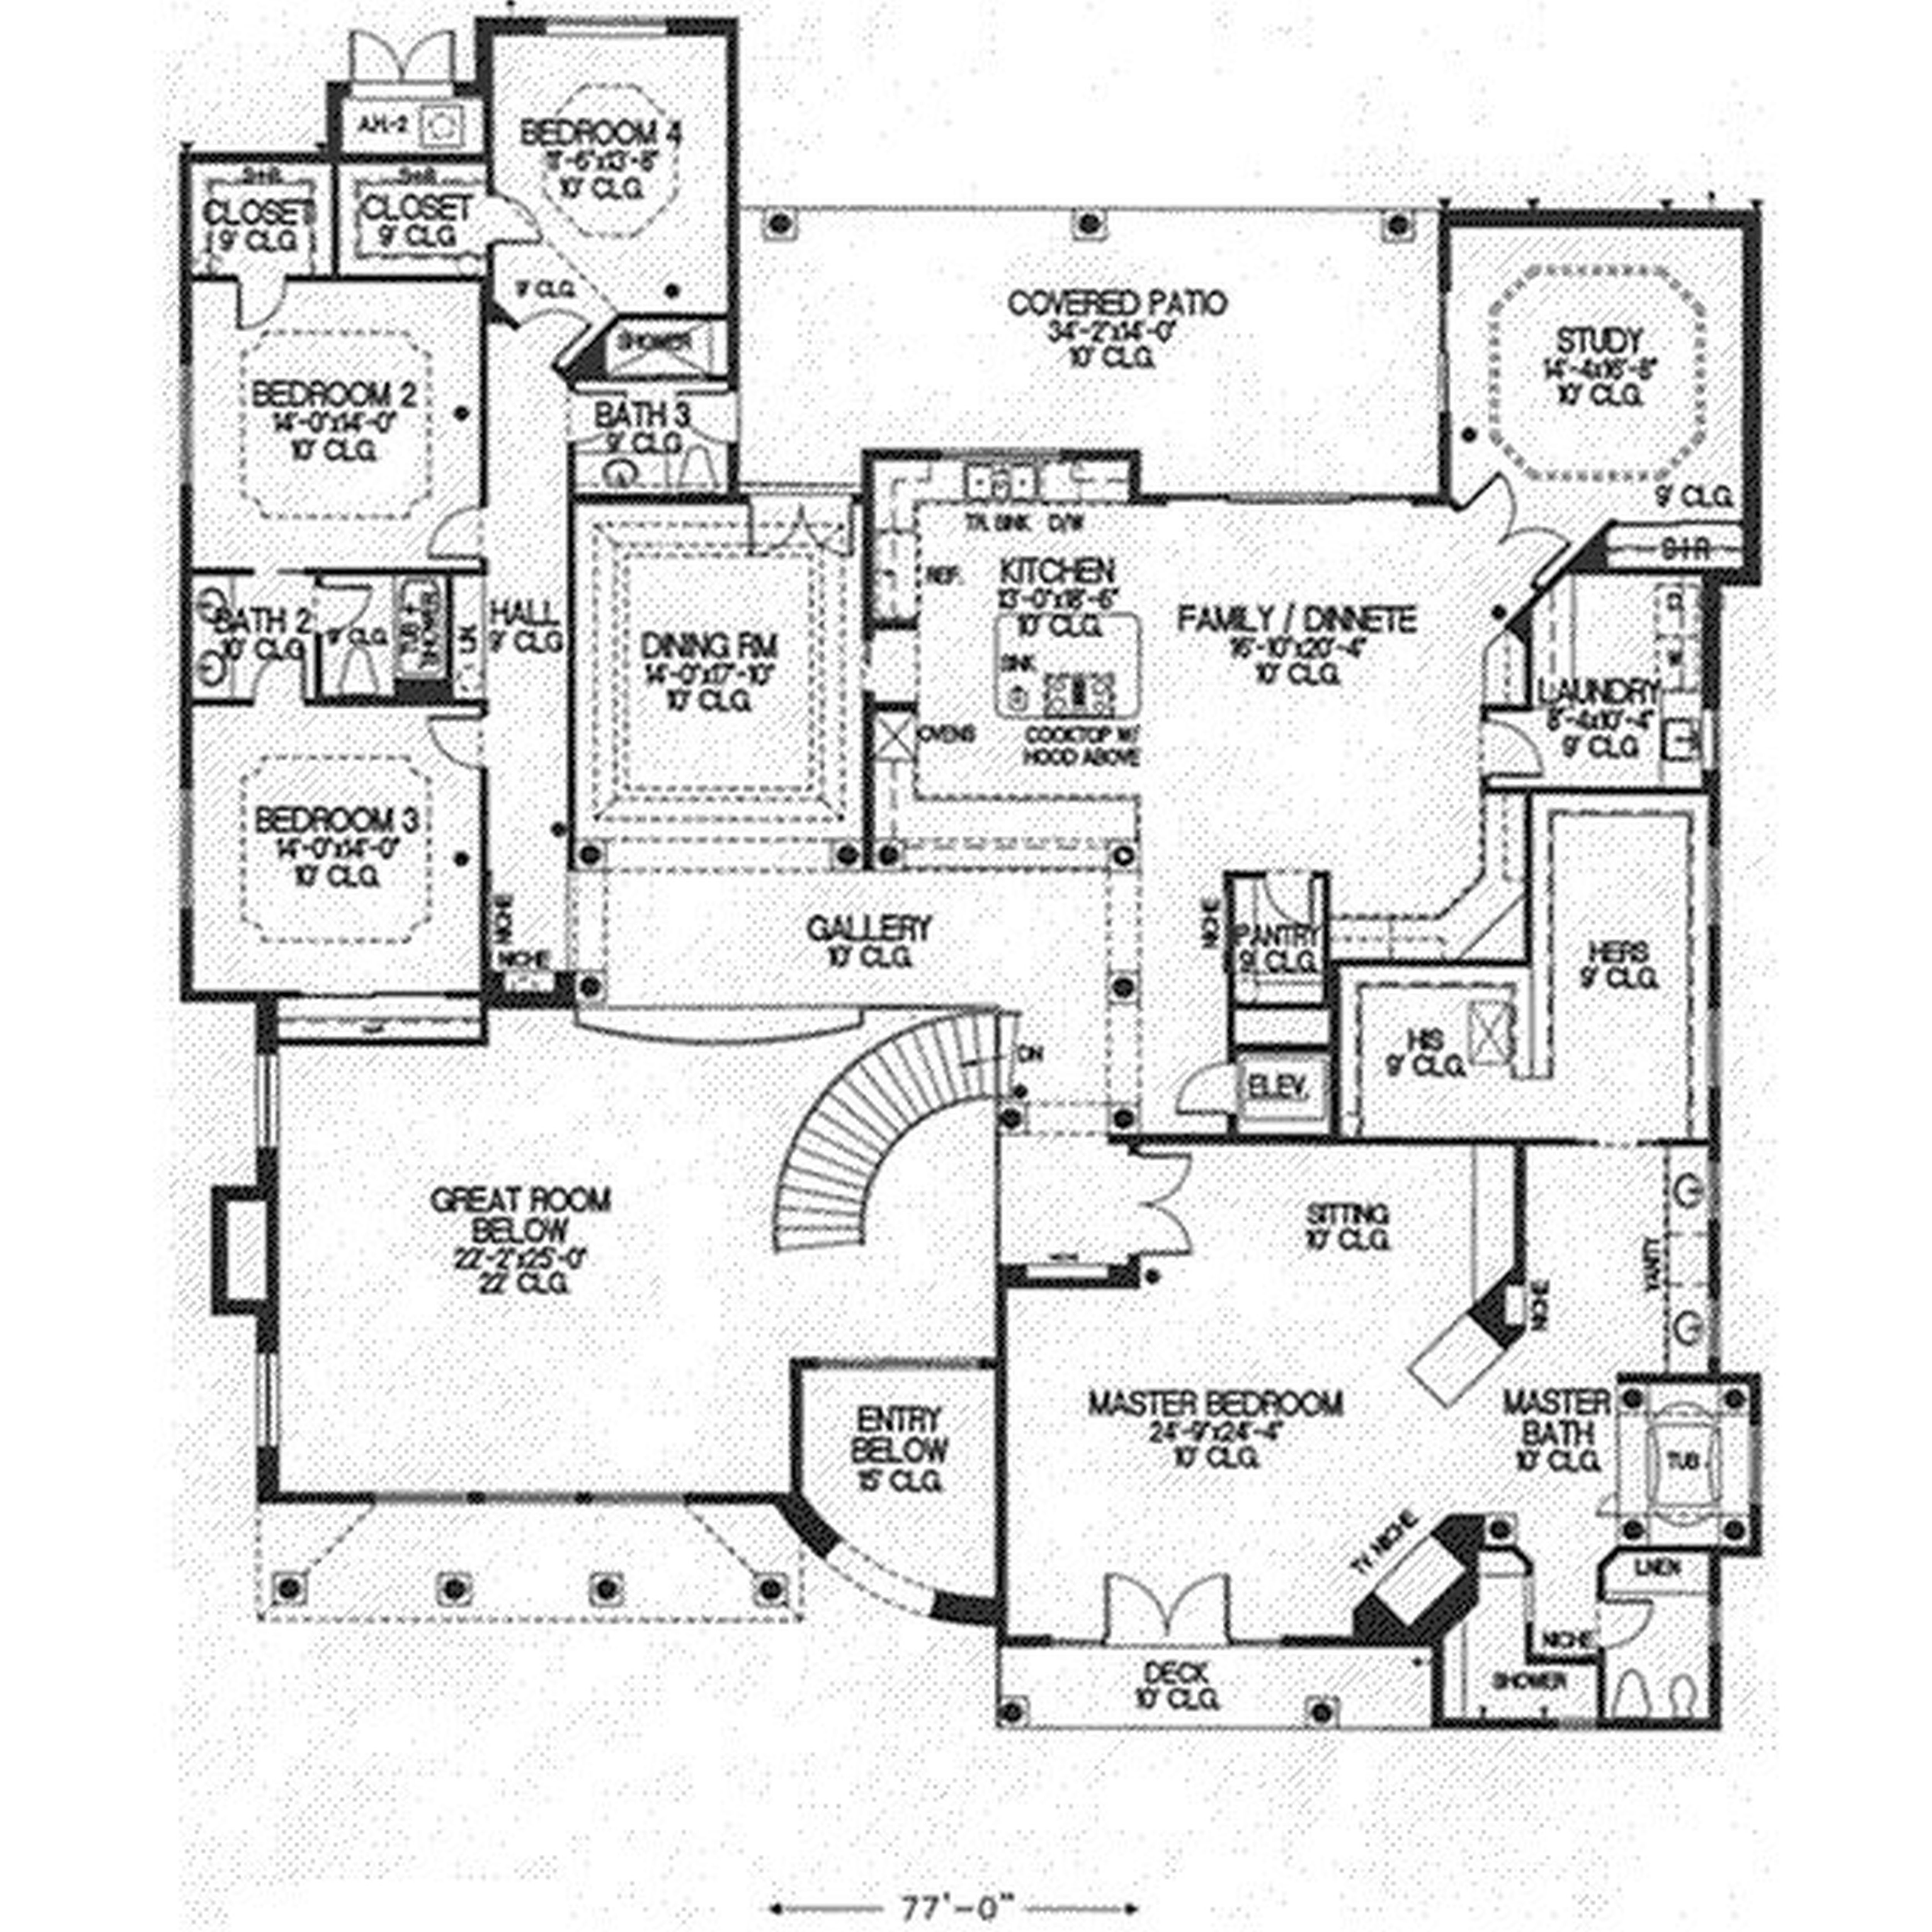 Free building drawing at getdrawings free for personal use 5000x5000 drawing desing double bubble map maker floor plan of hotel malvernweather Image collections